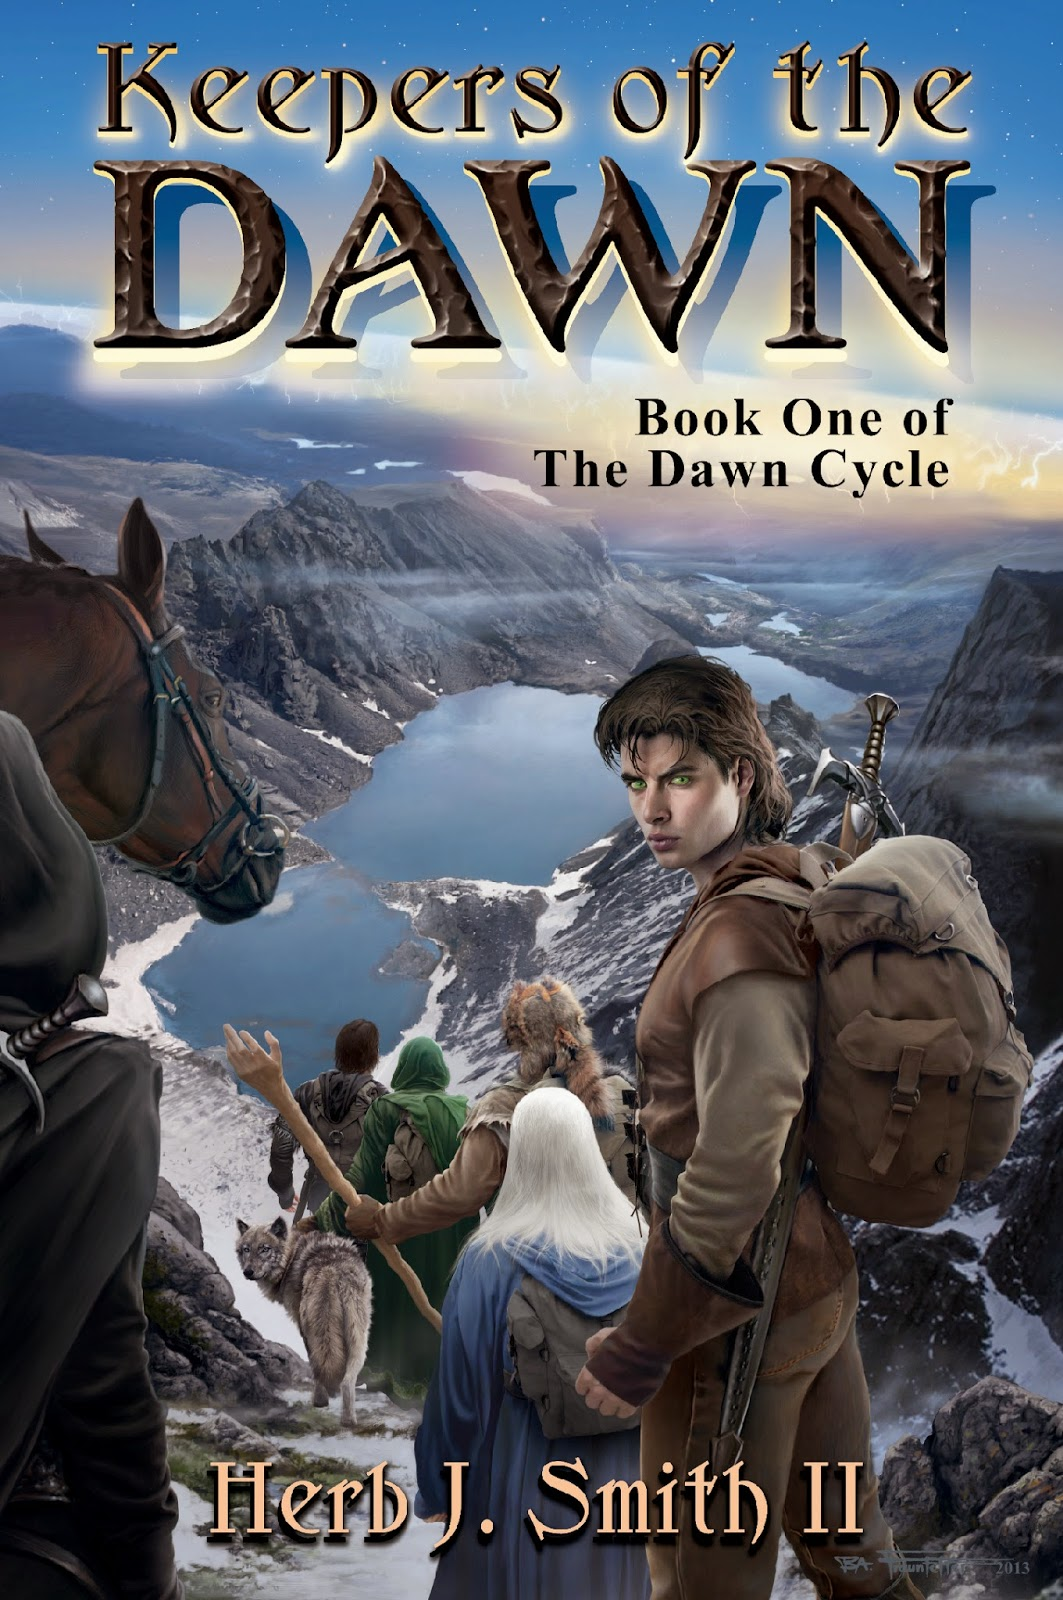 Book Blitz--> Keepers of the Dawn (The Dawn Cycle #1) by Herb J. Smith II